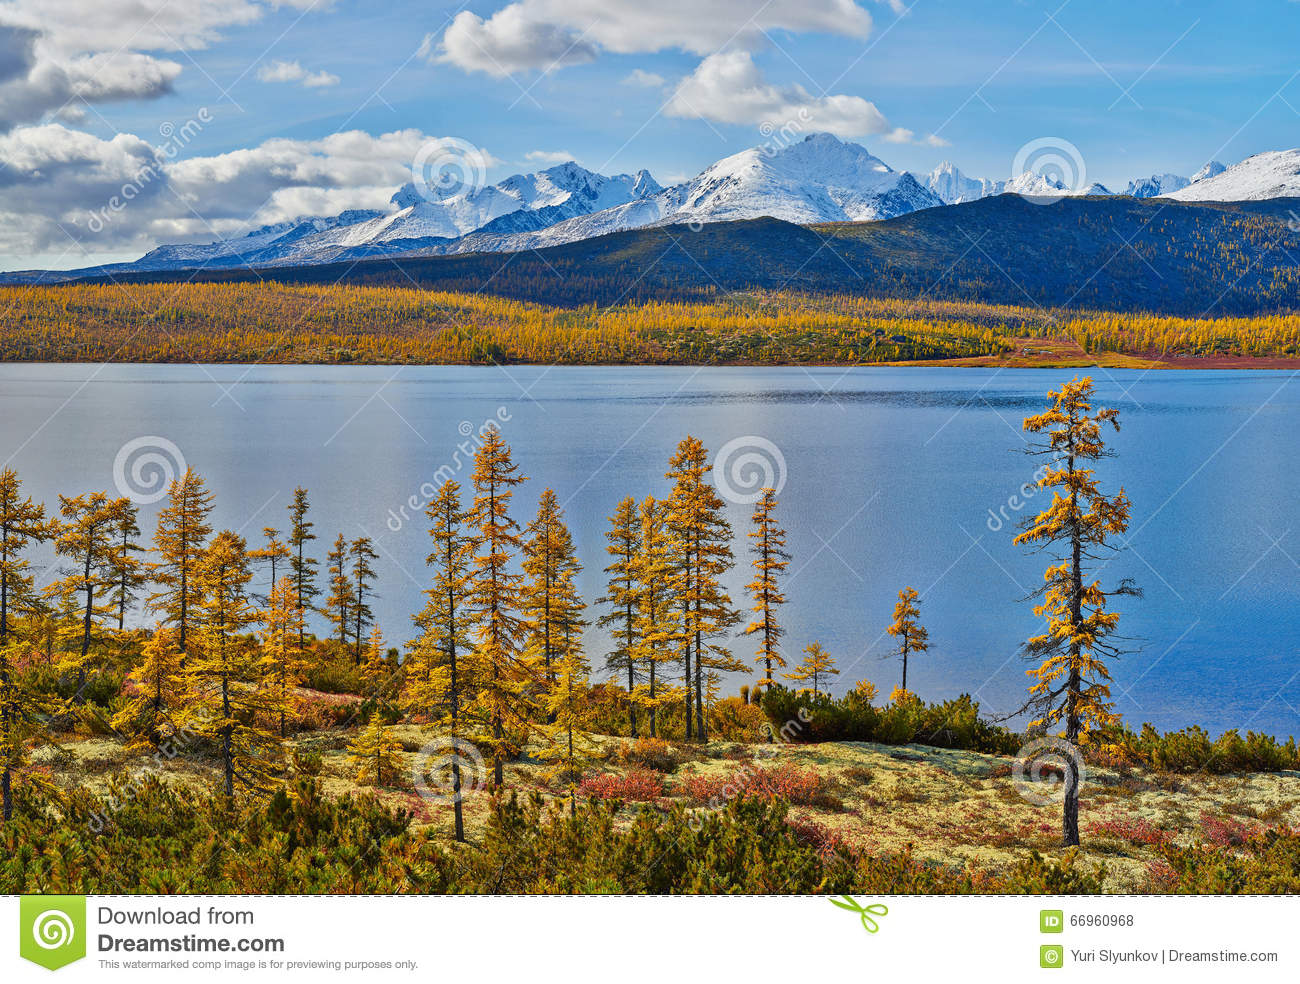 Autumn on Jack London s lake. Mountains in snow